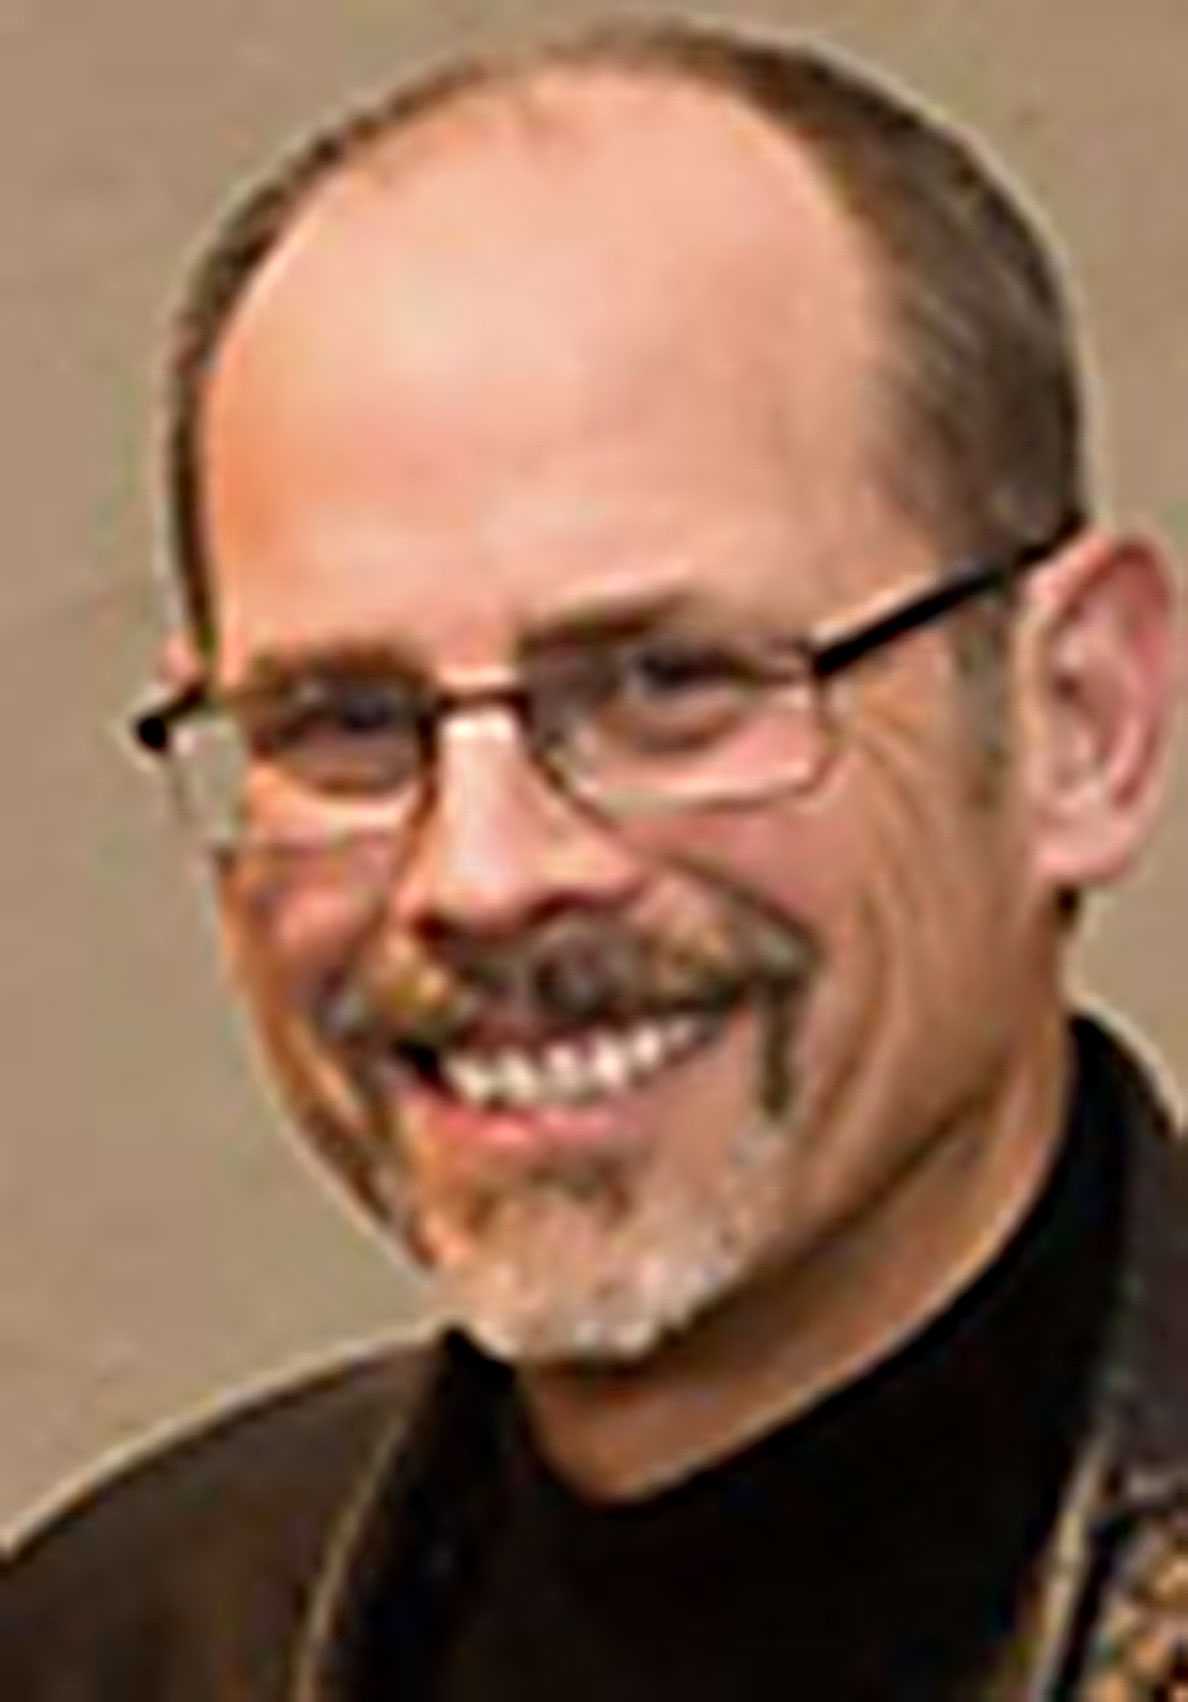 <strong>Dave Ogren</strong><br /> US Missions Director, USA